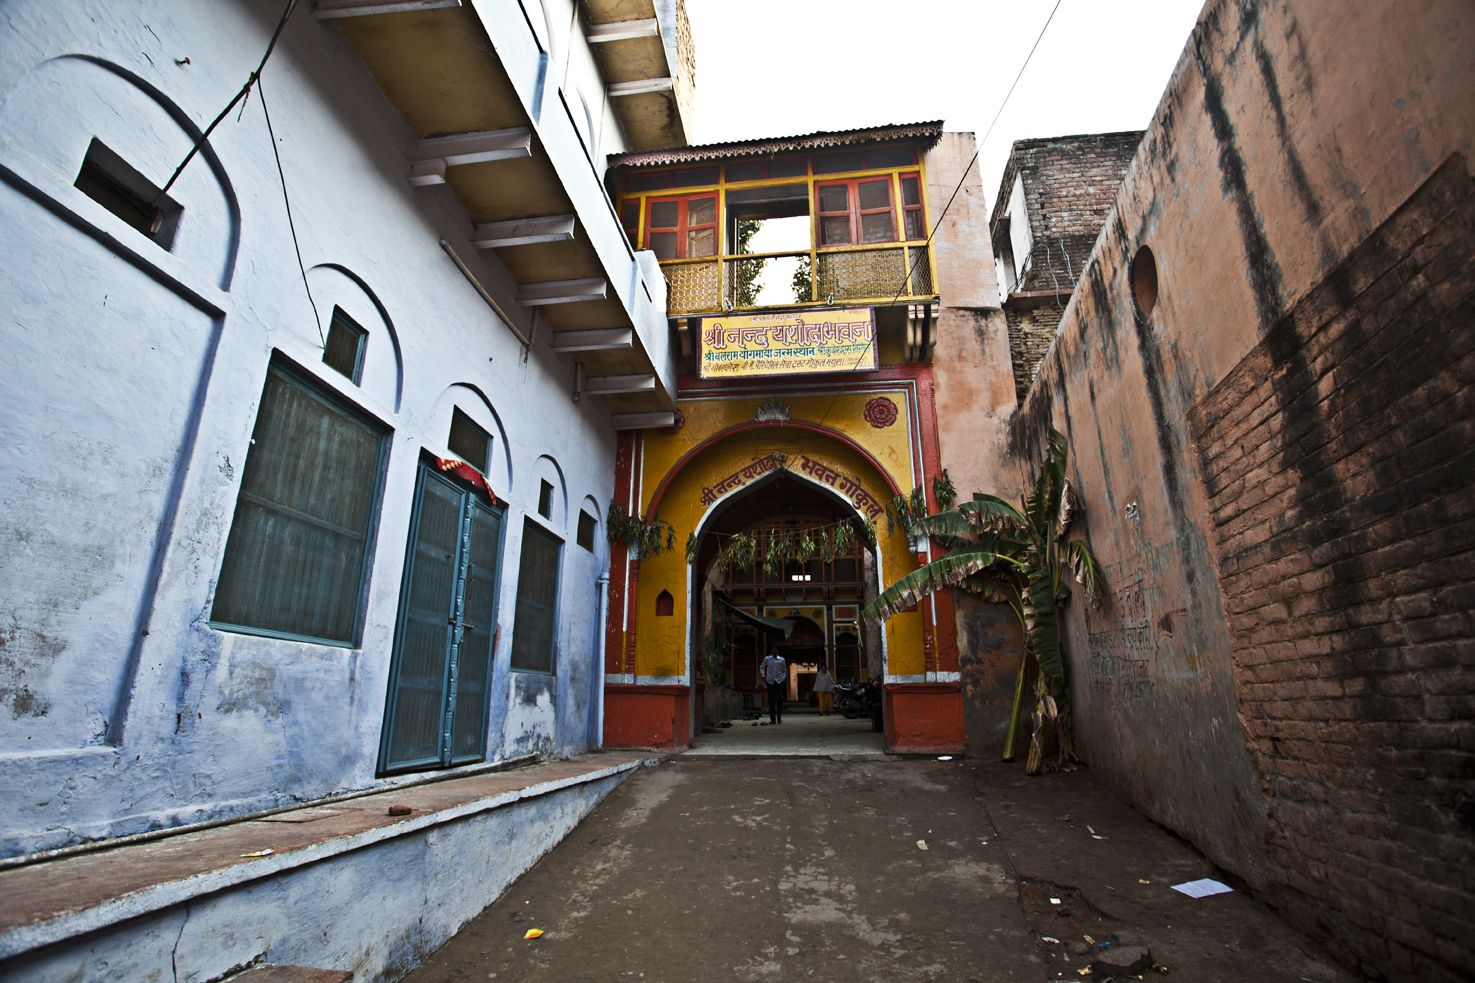 The House of Nand- This is where Lord #Krishna spent his